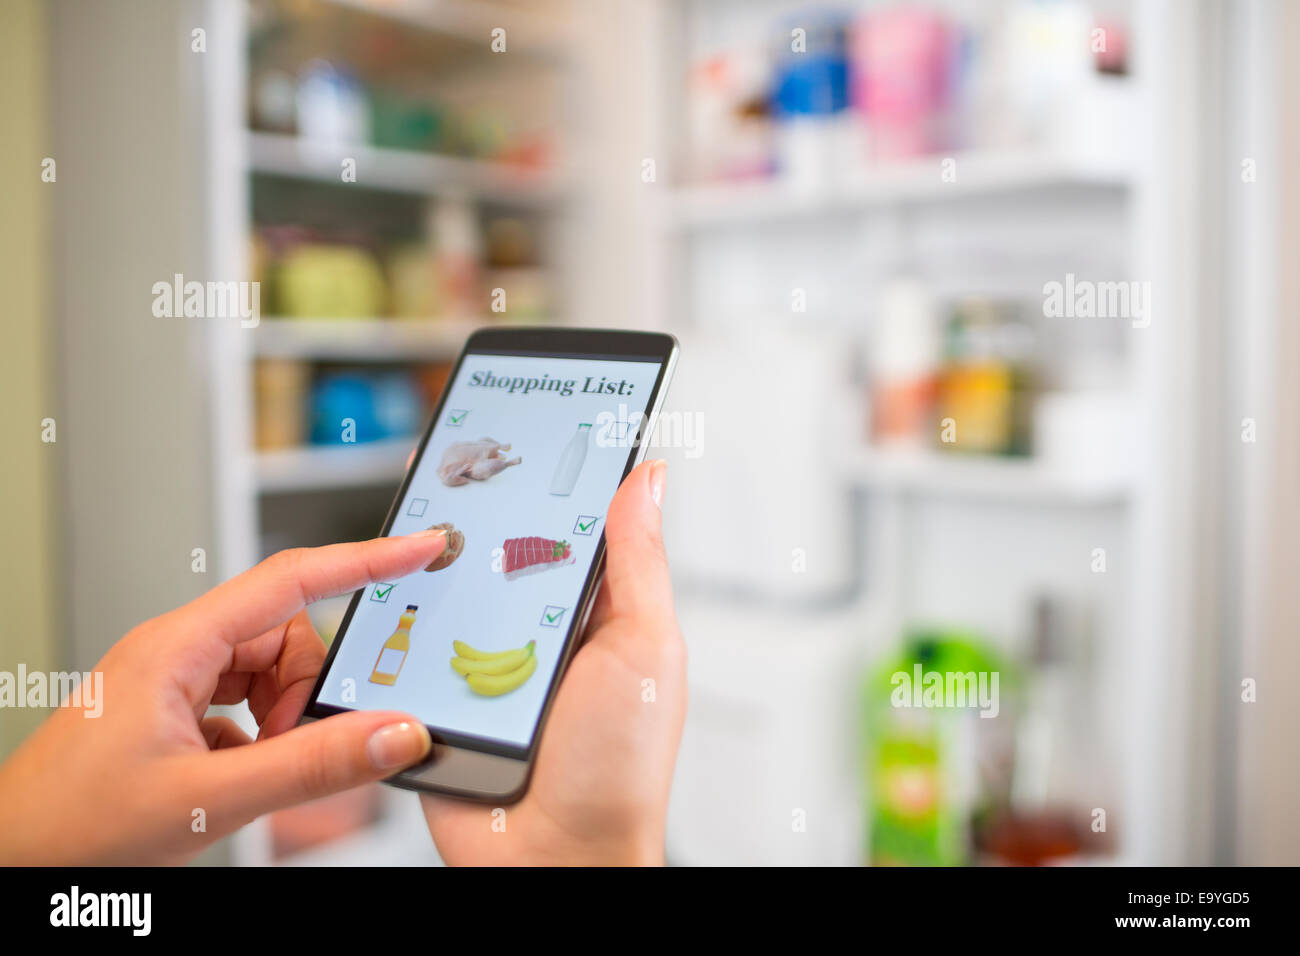 app application background business communication computer connection contact female food hand holding internet - Stock Image